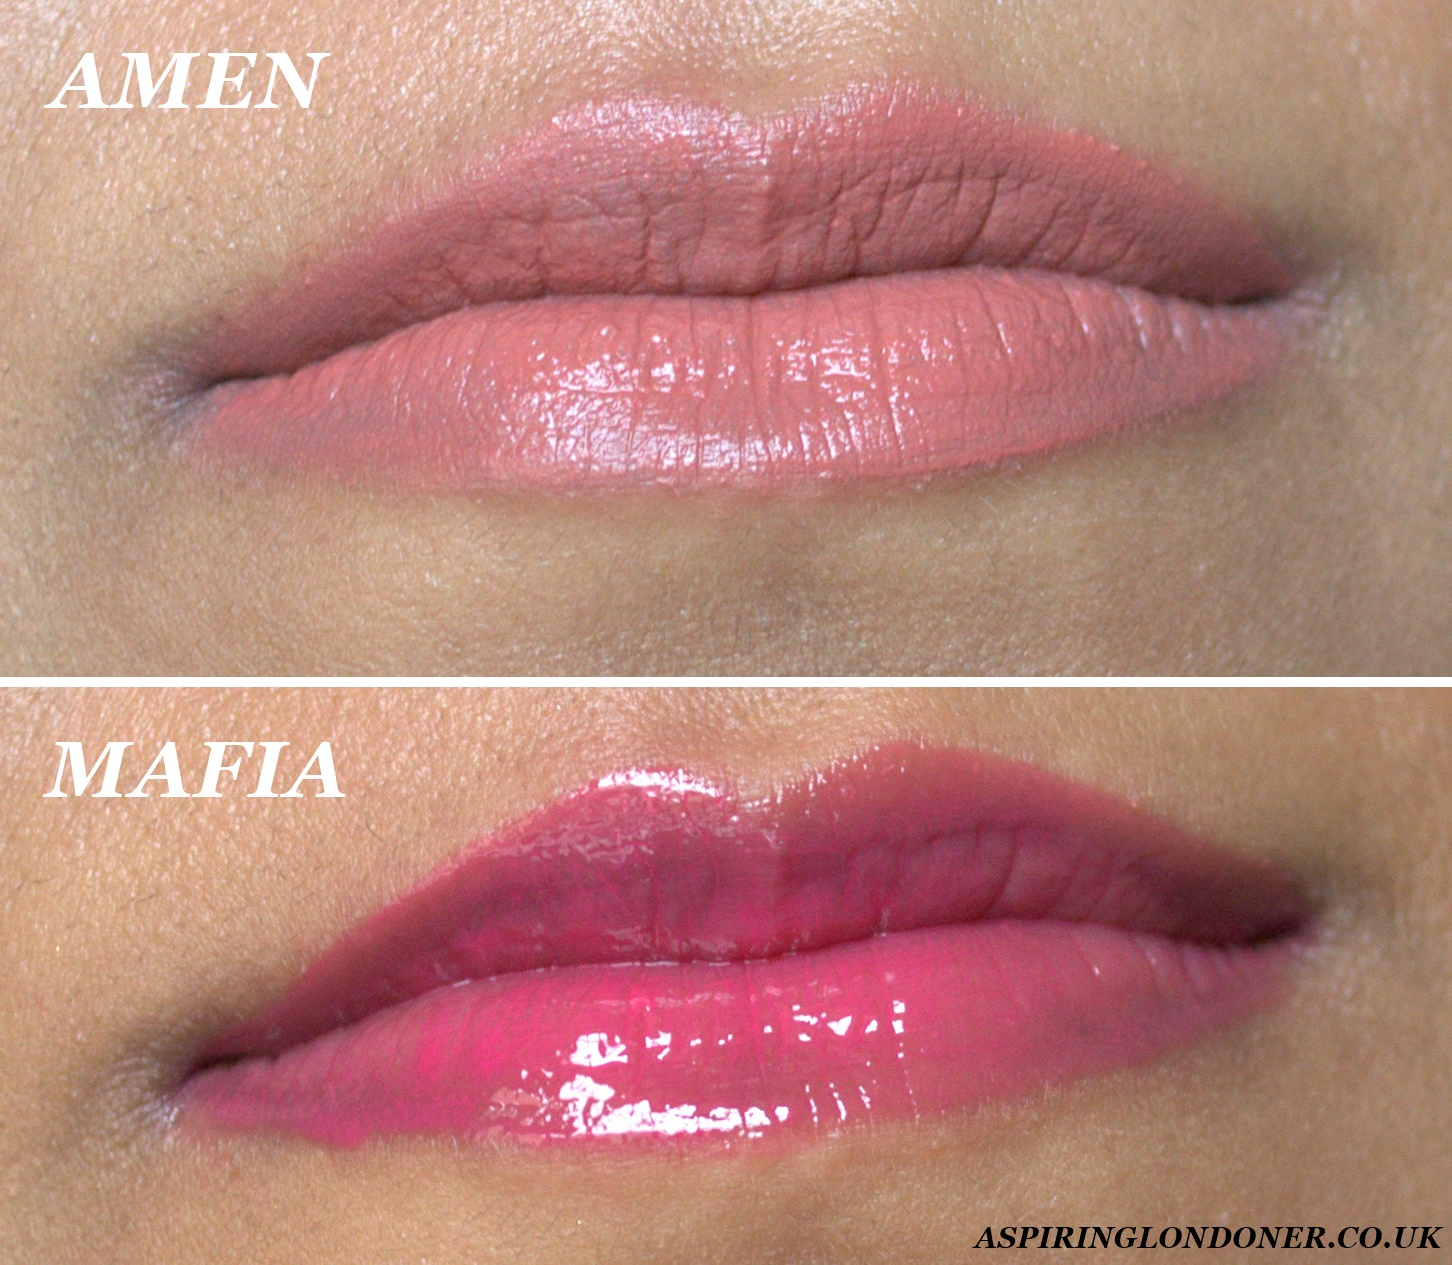 L'Oreal Paris Infallible Mega Gloss Lip Swatches Amen Mafia - Aspiring Londoner